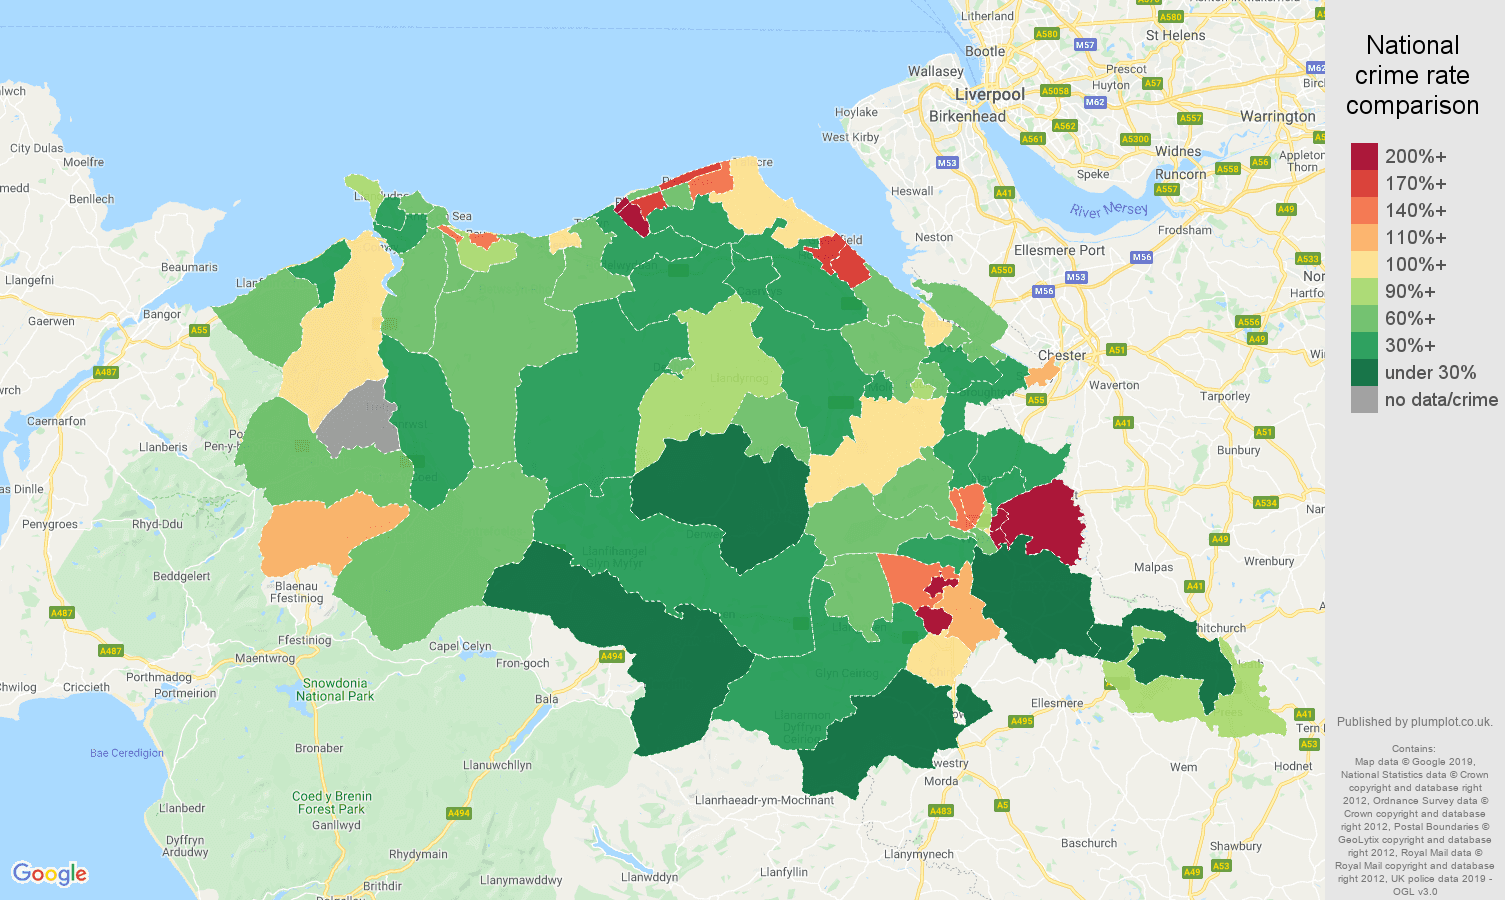 Clwyd other crime rate comparison map